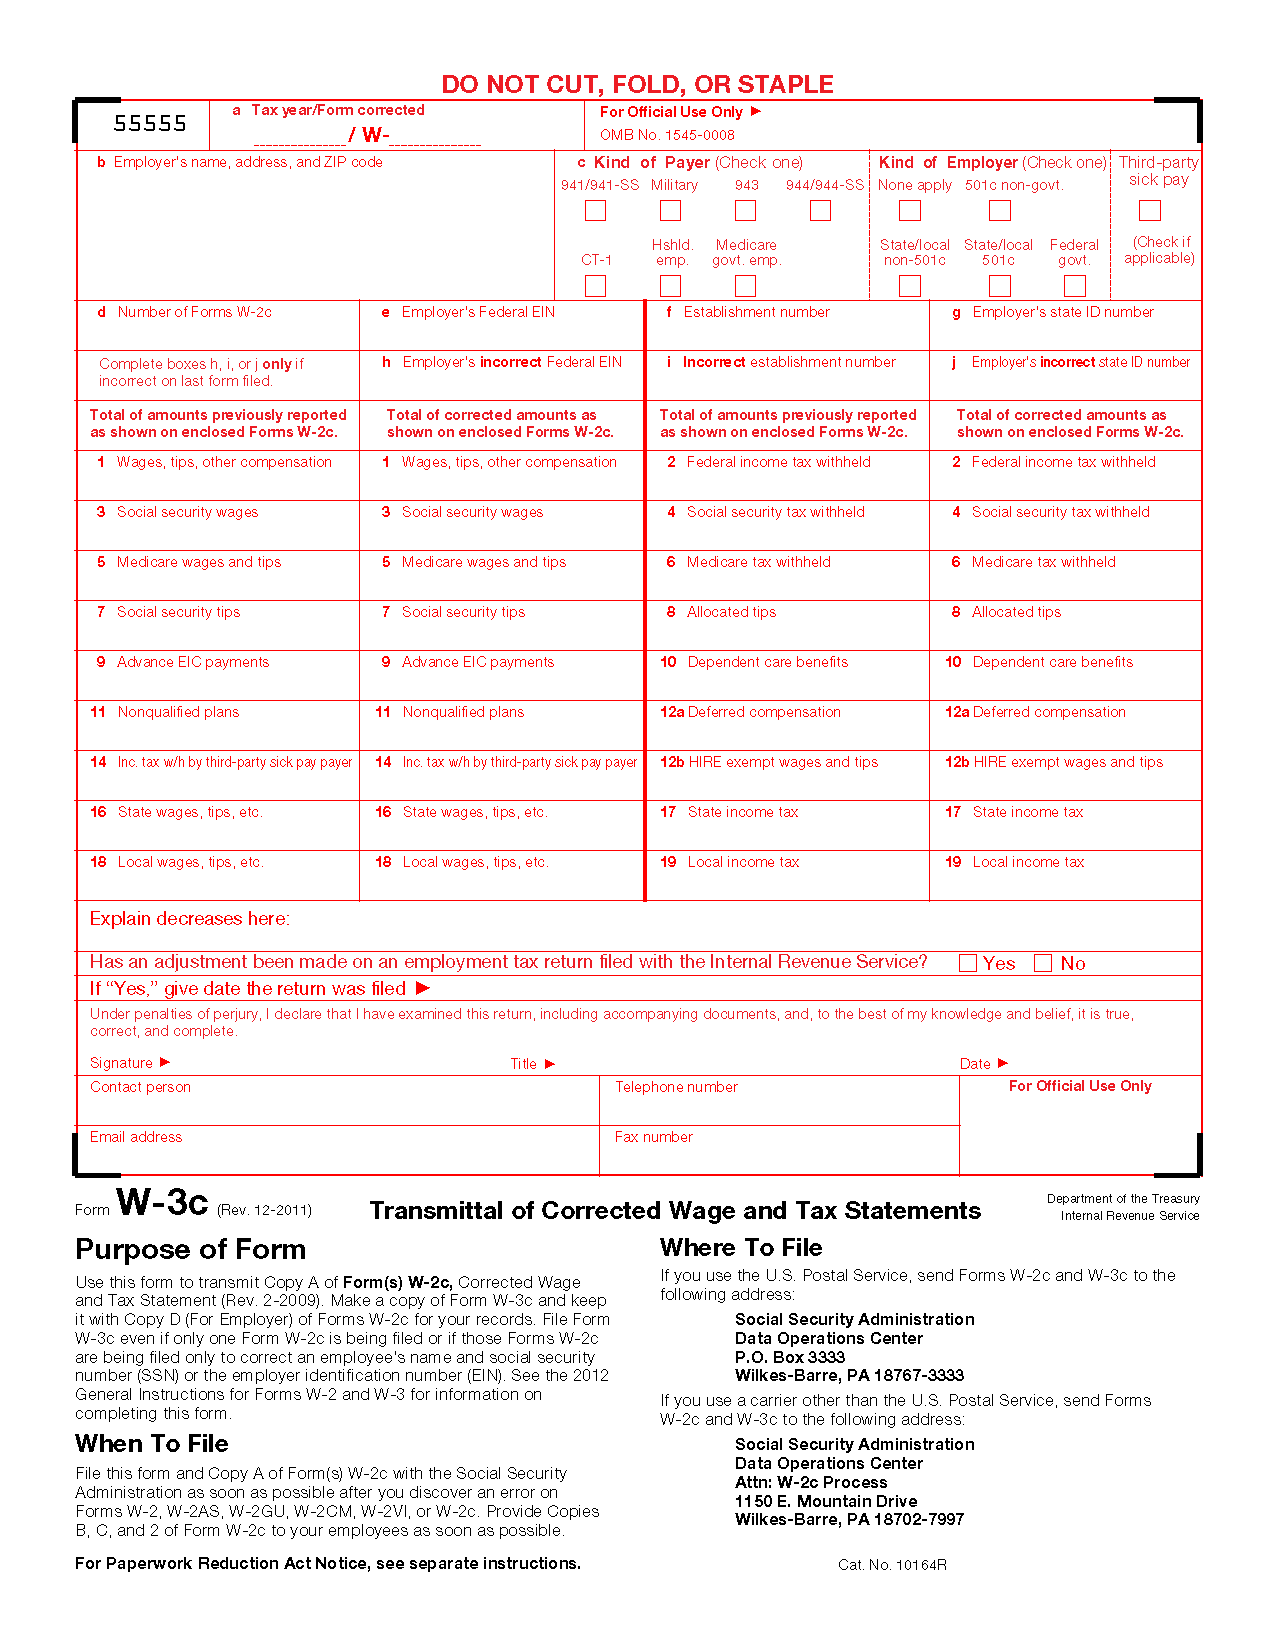 Form w 3c transmittal of corrected wage and tax statements info view all 2011 irs tax forms falaconquin